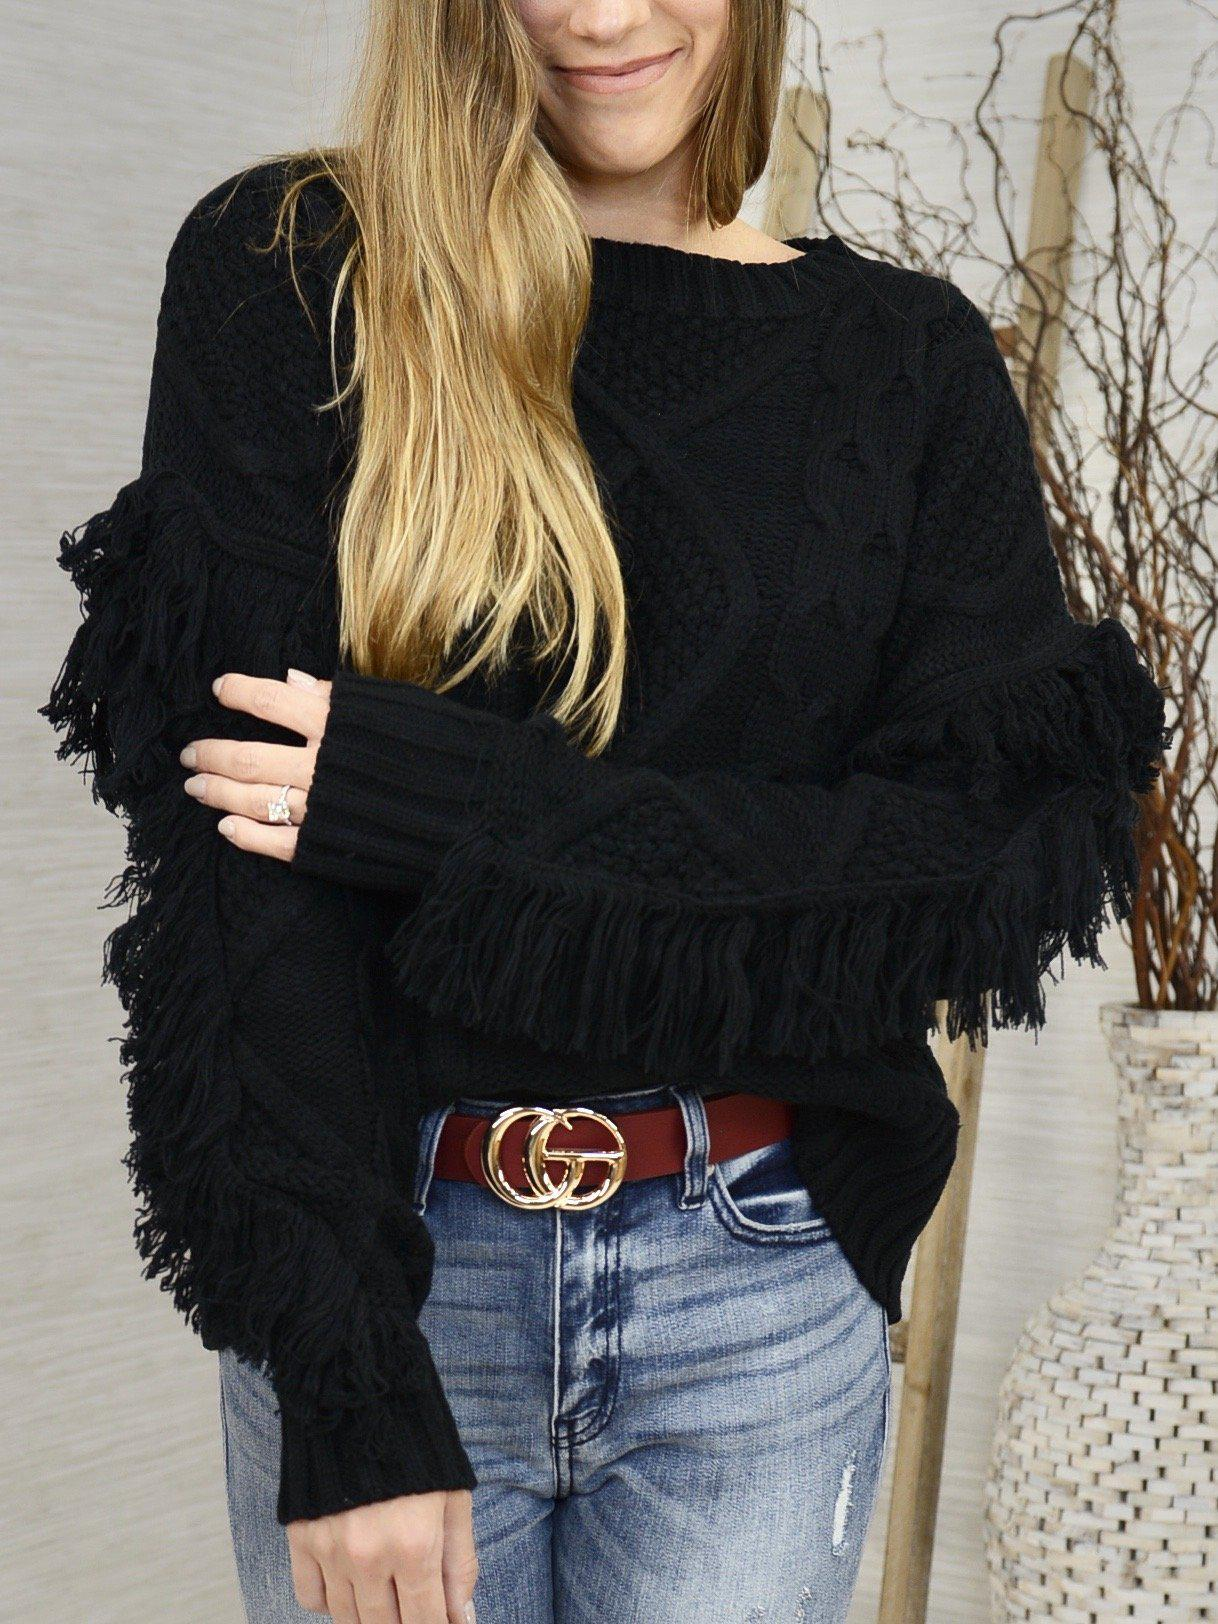 Fanciful Fringe Sweater-Women's -New Arrivals-Runway Seven